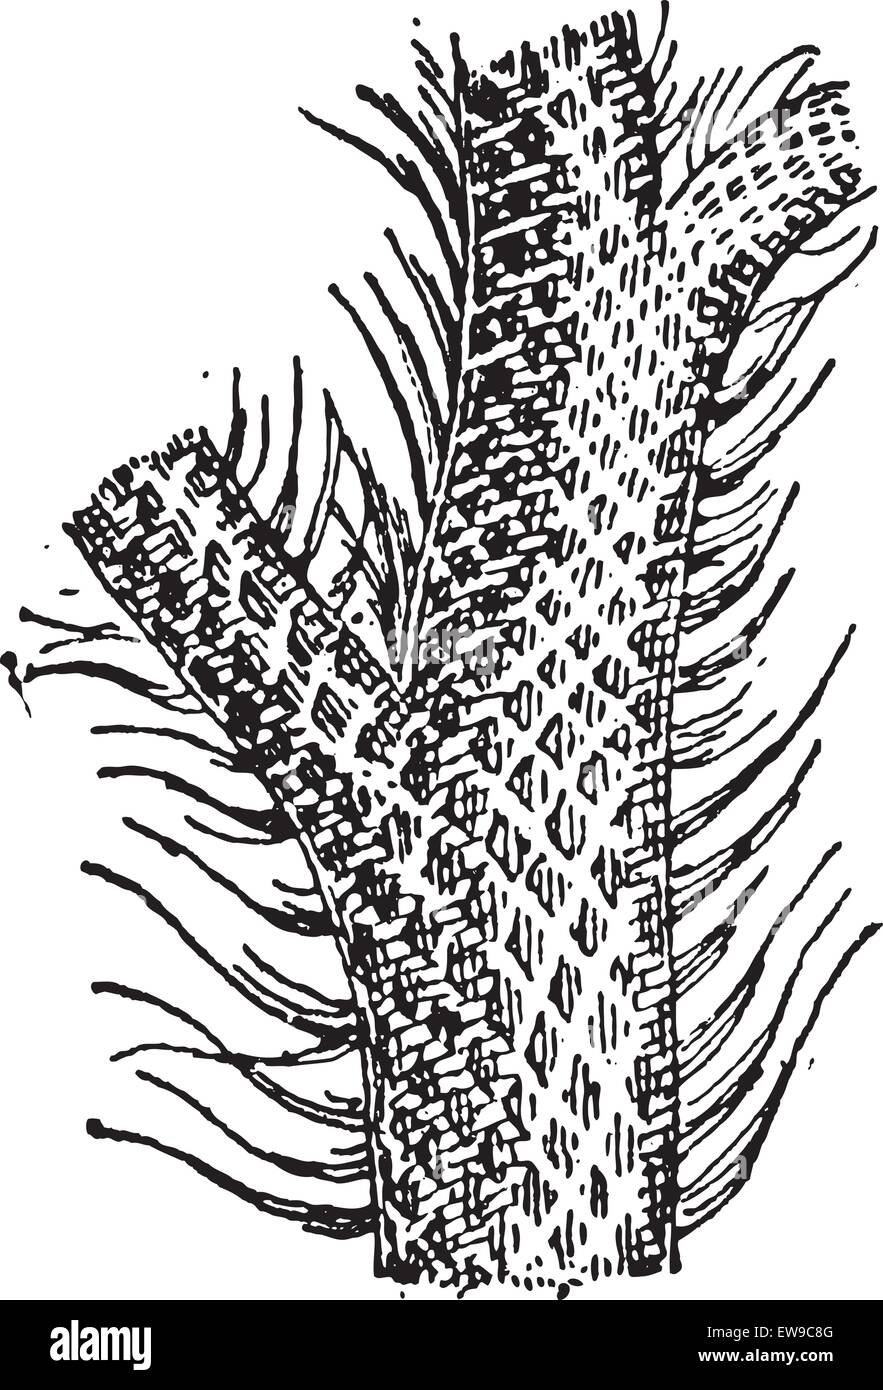 Lepidodendron, showing trunk and grass-like leaf blades, vintage engraved illustration. Dictionary of Words and Stock Vector